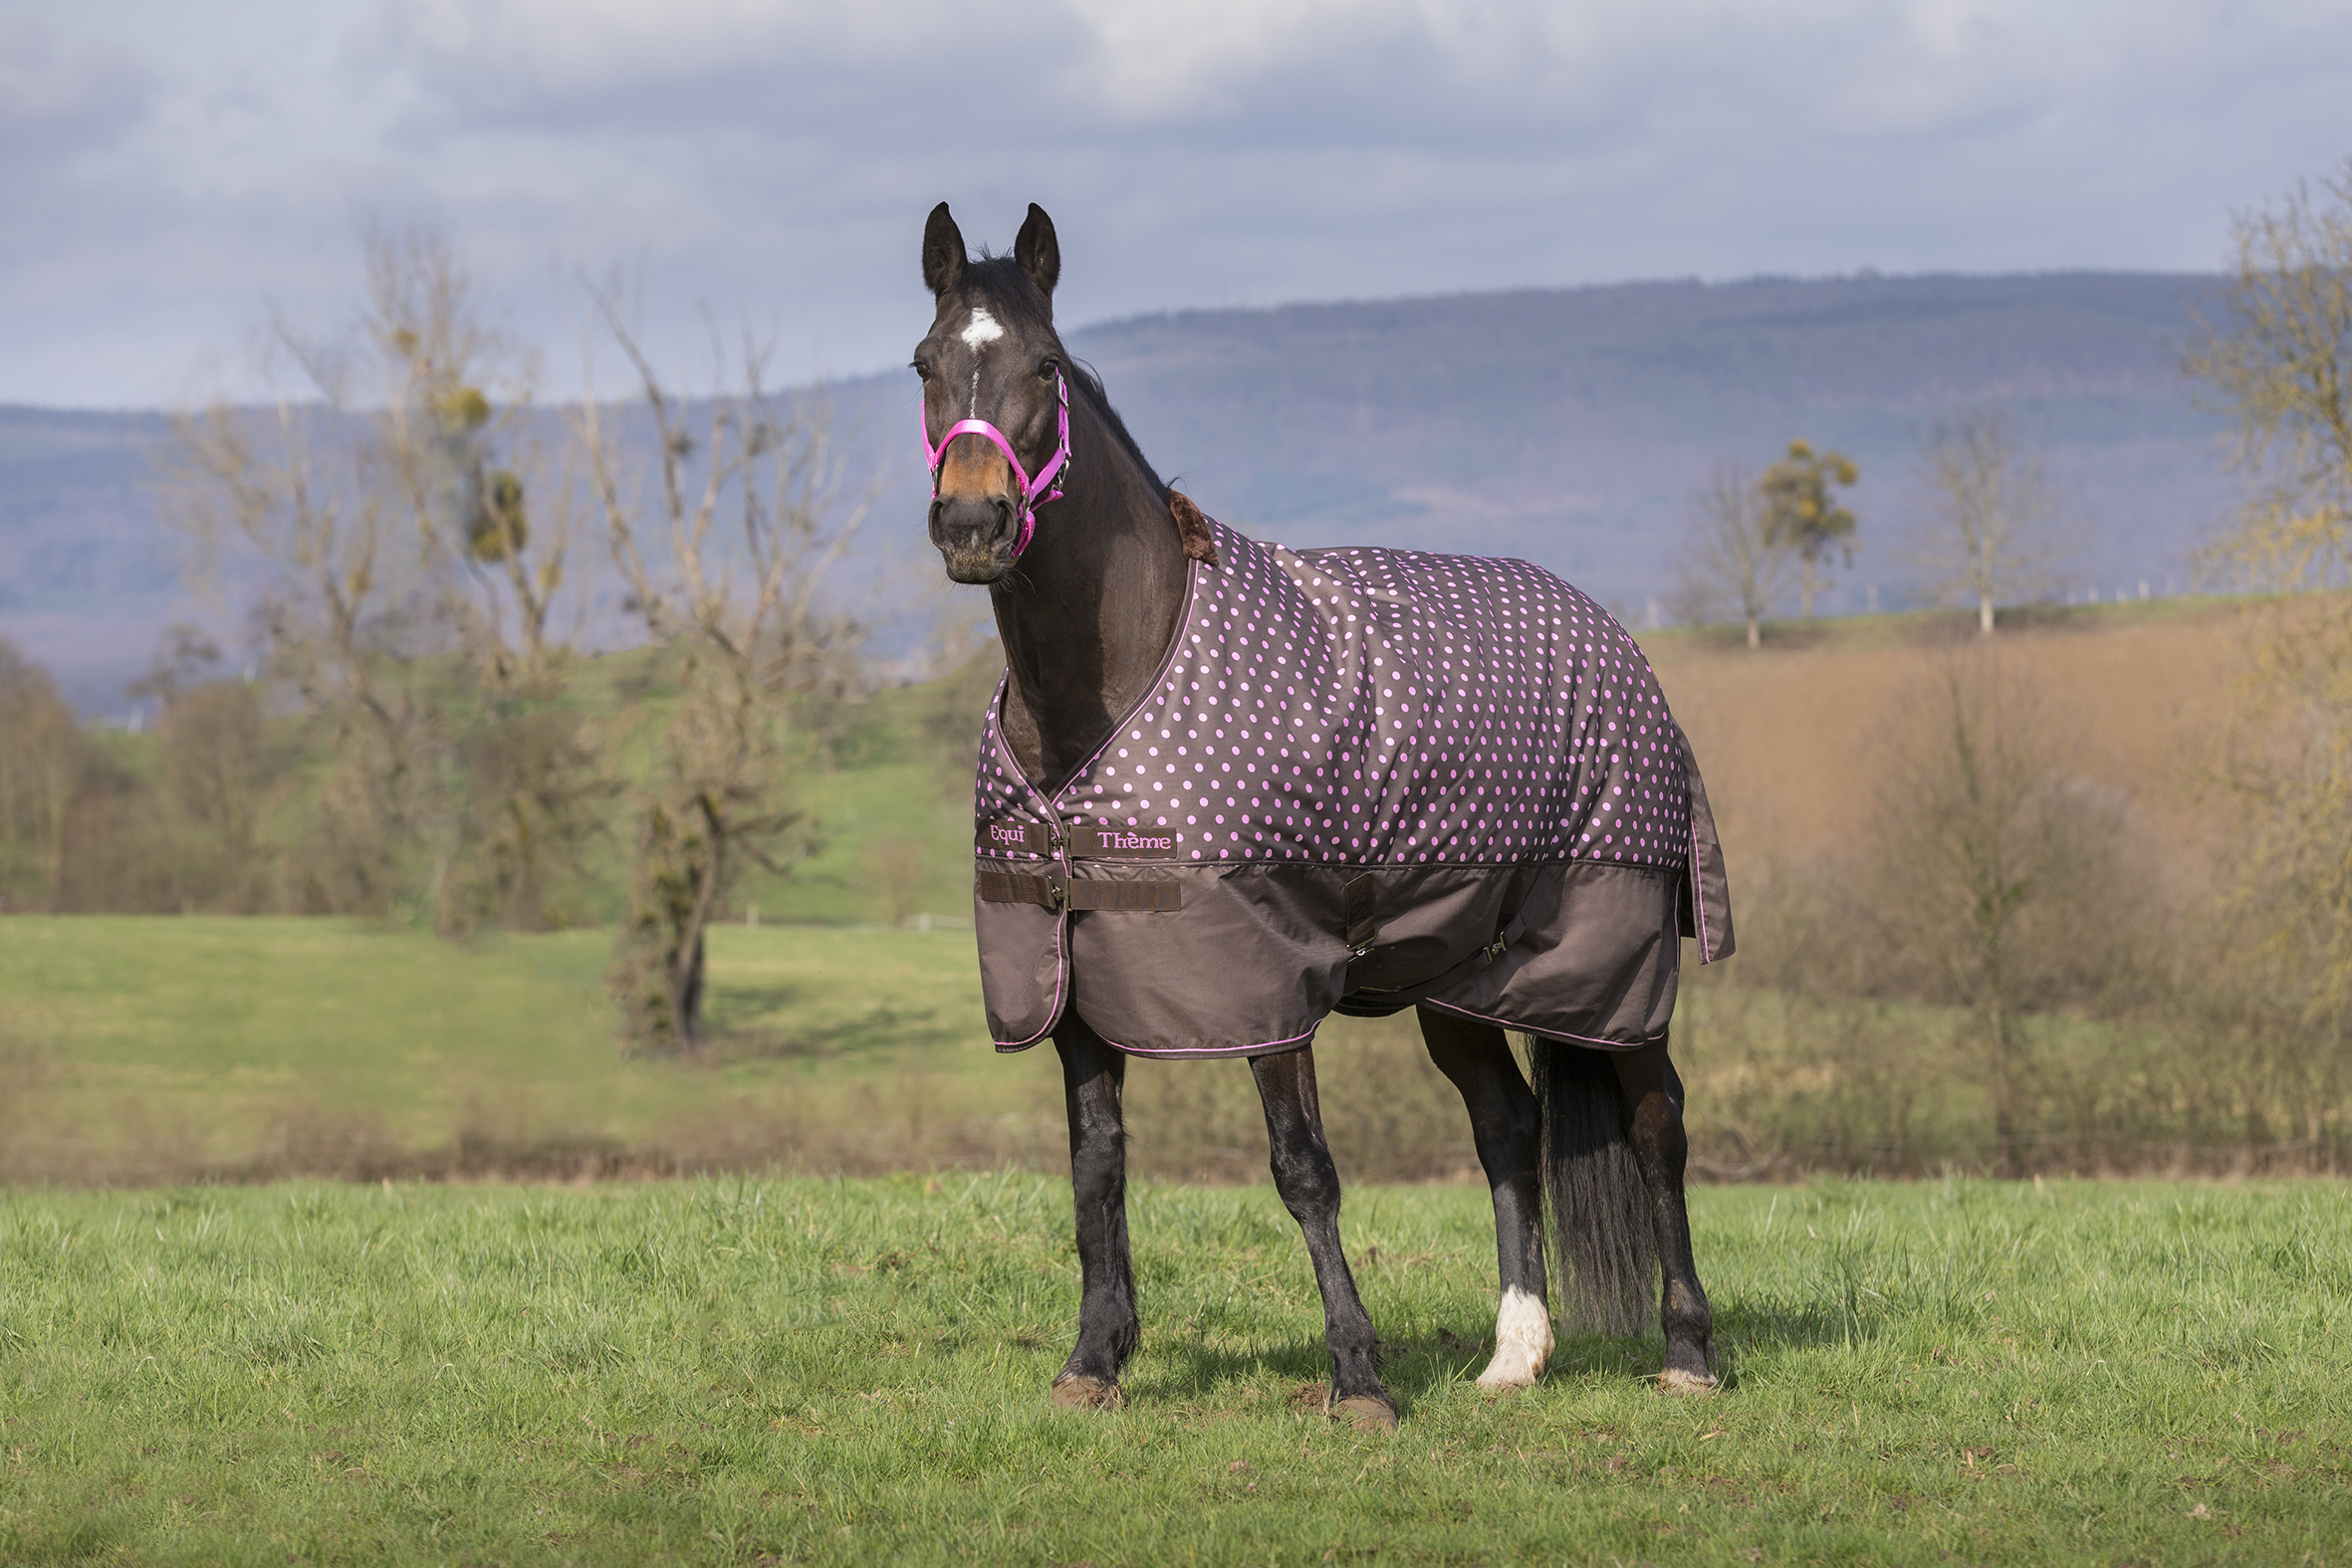 The amount of turnout time and your horse's shape will all influence which rug will suit your horse best